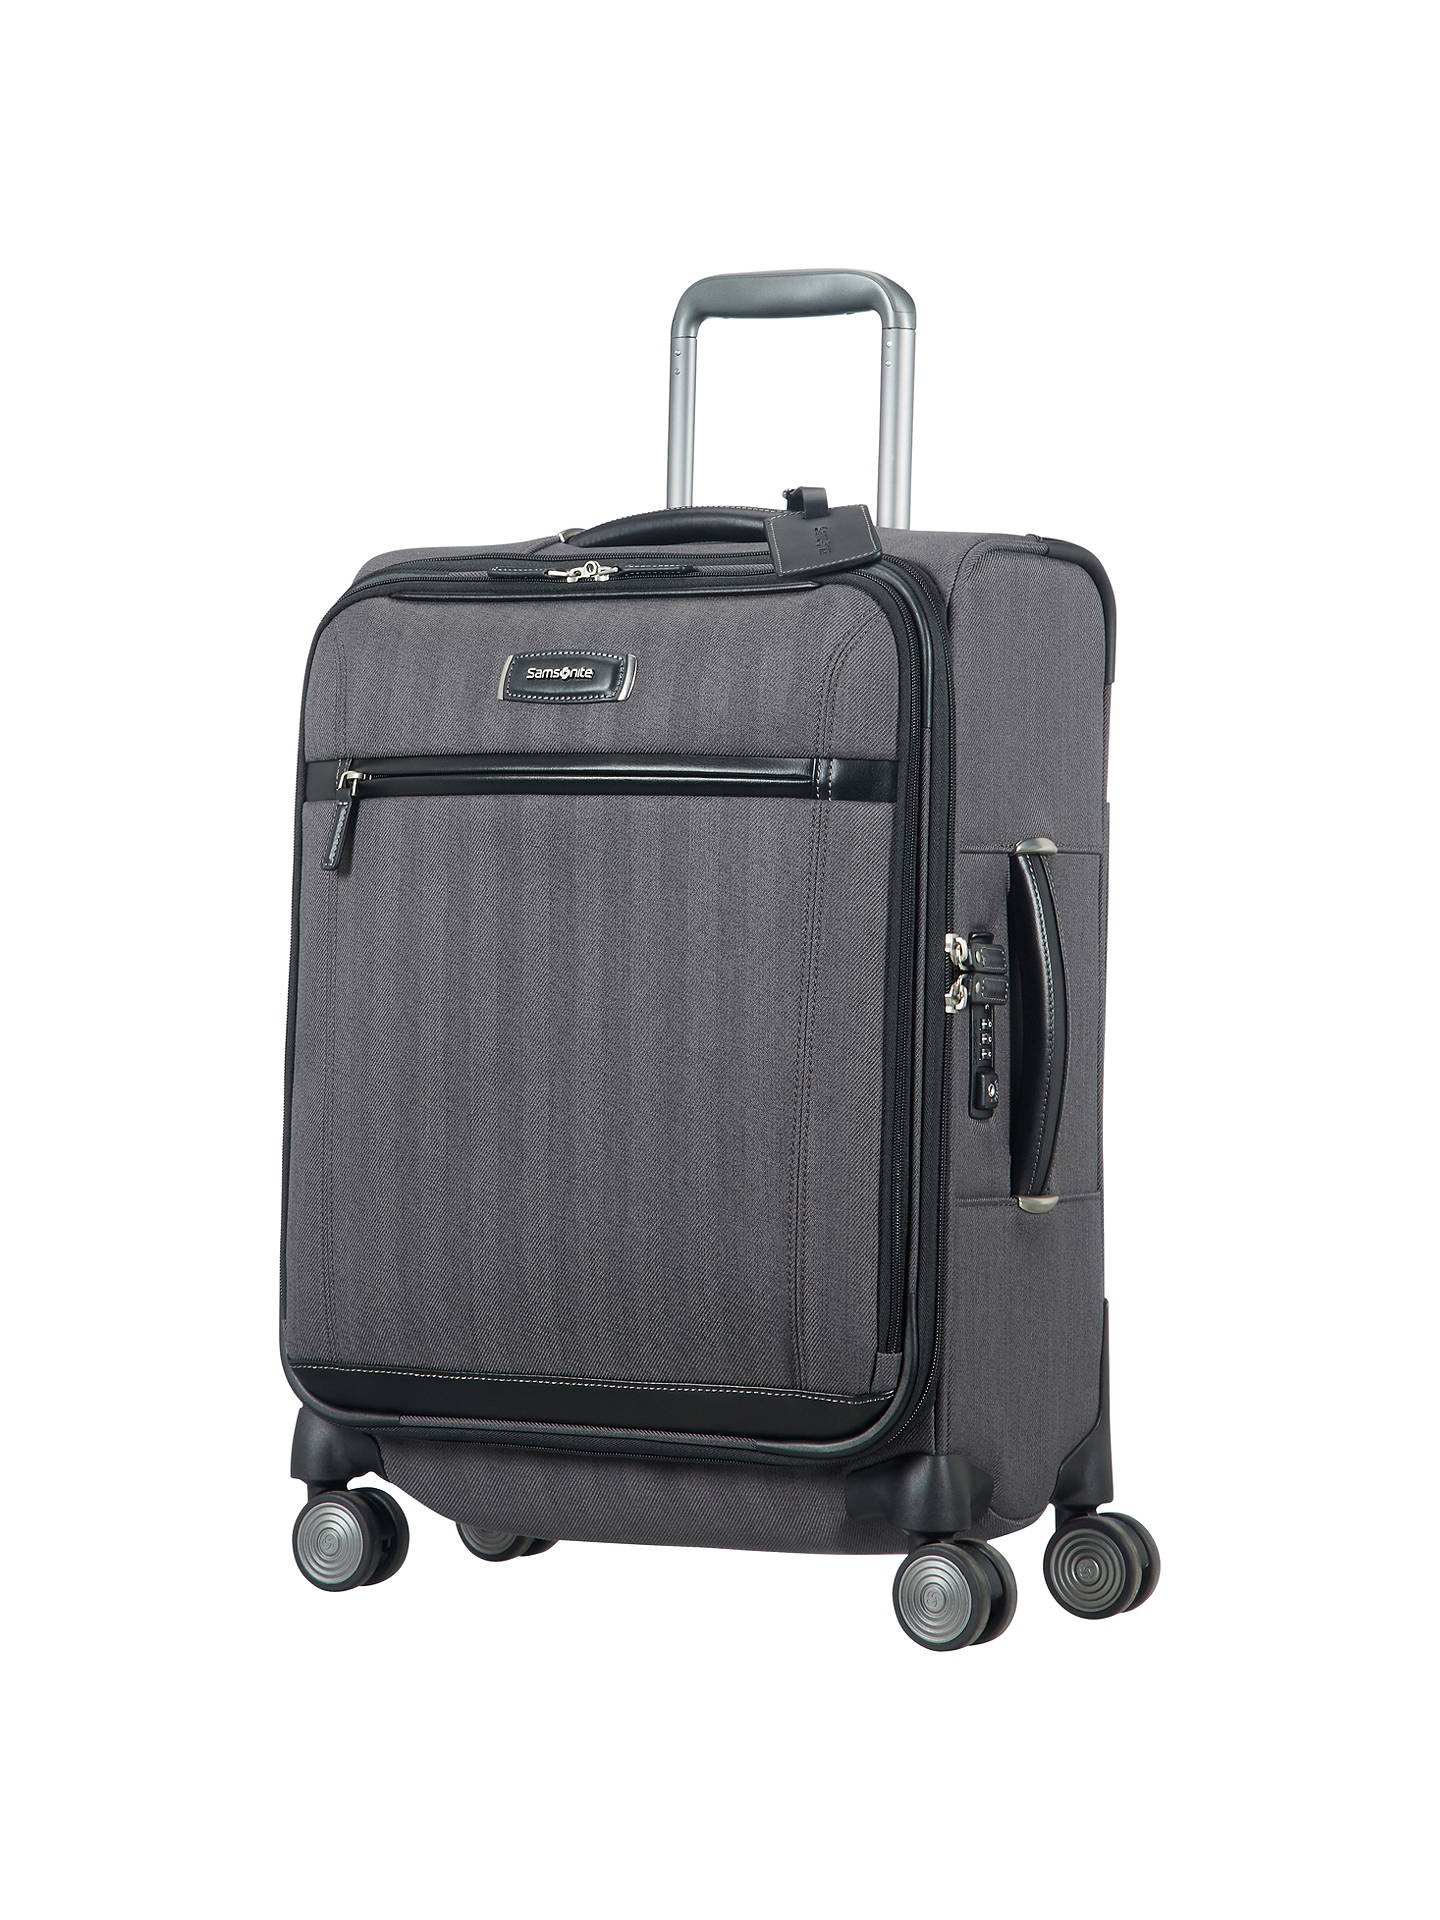 BuySamsonite Lite DLX Spinner 4-Wheel 55cm Cabin Suitcase Online at johnlewis.com